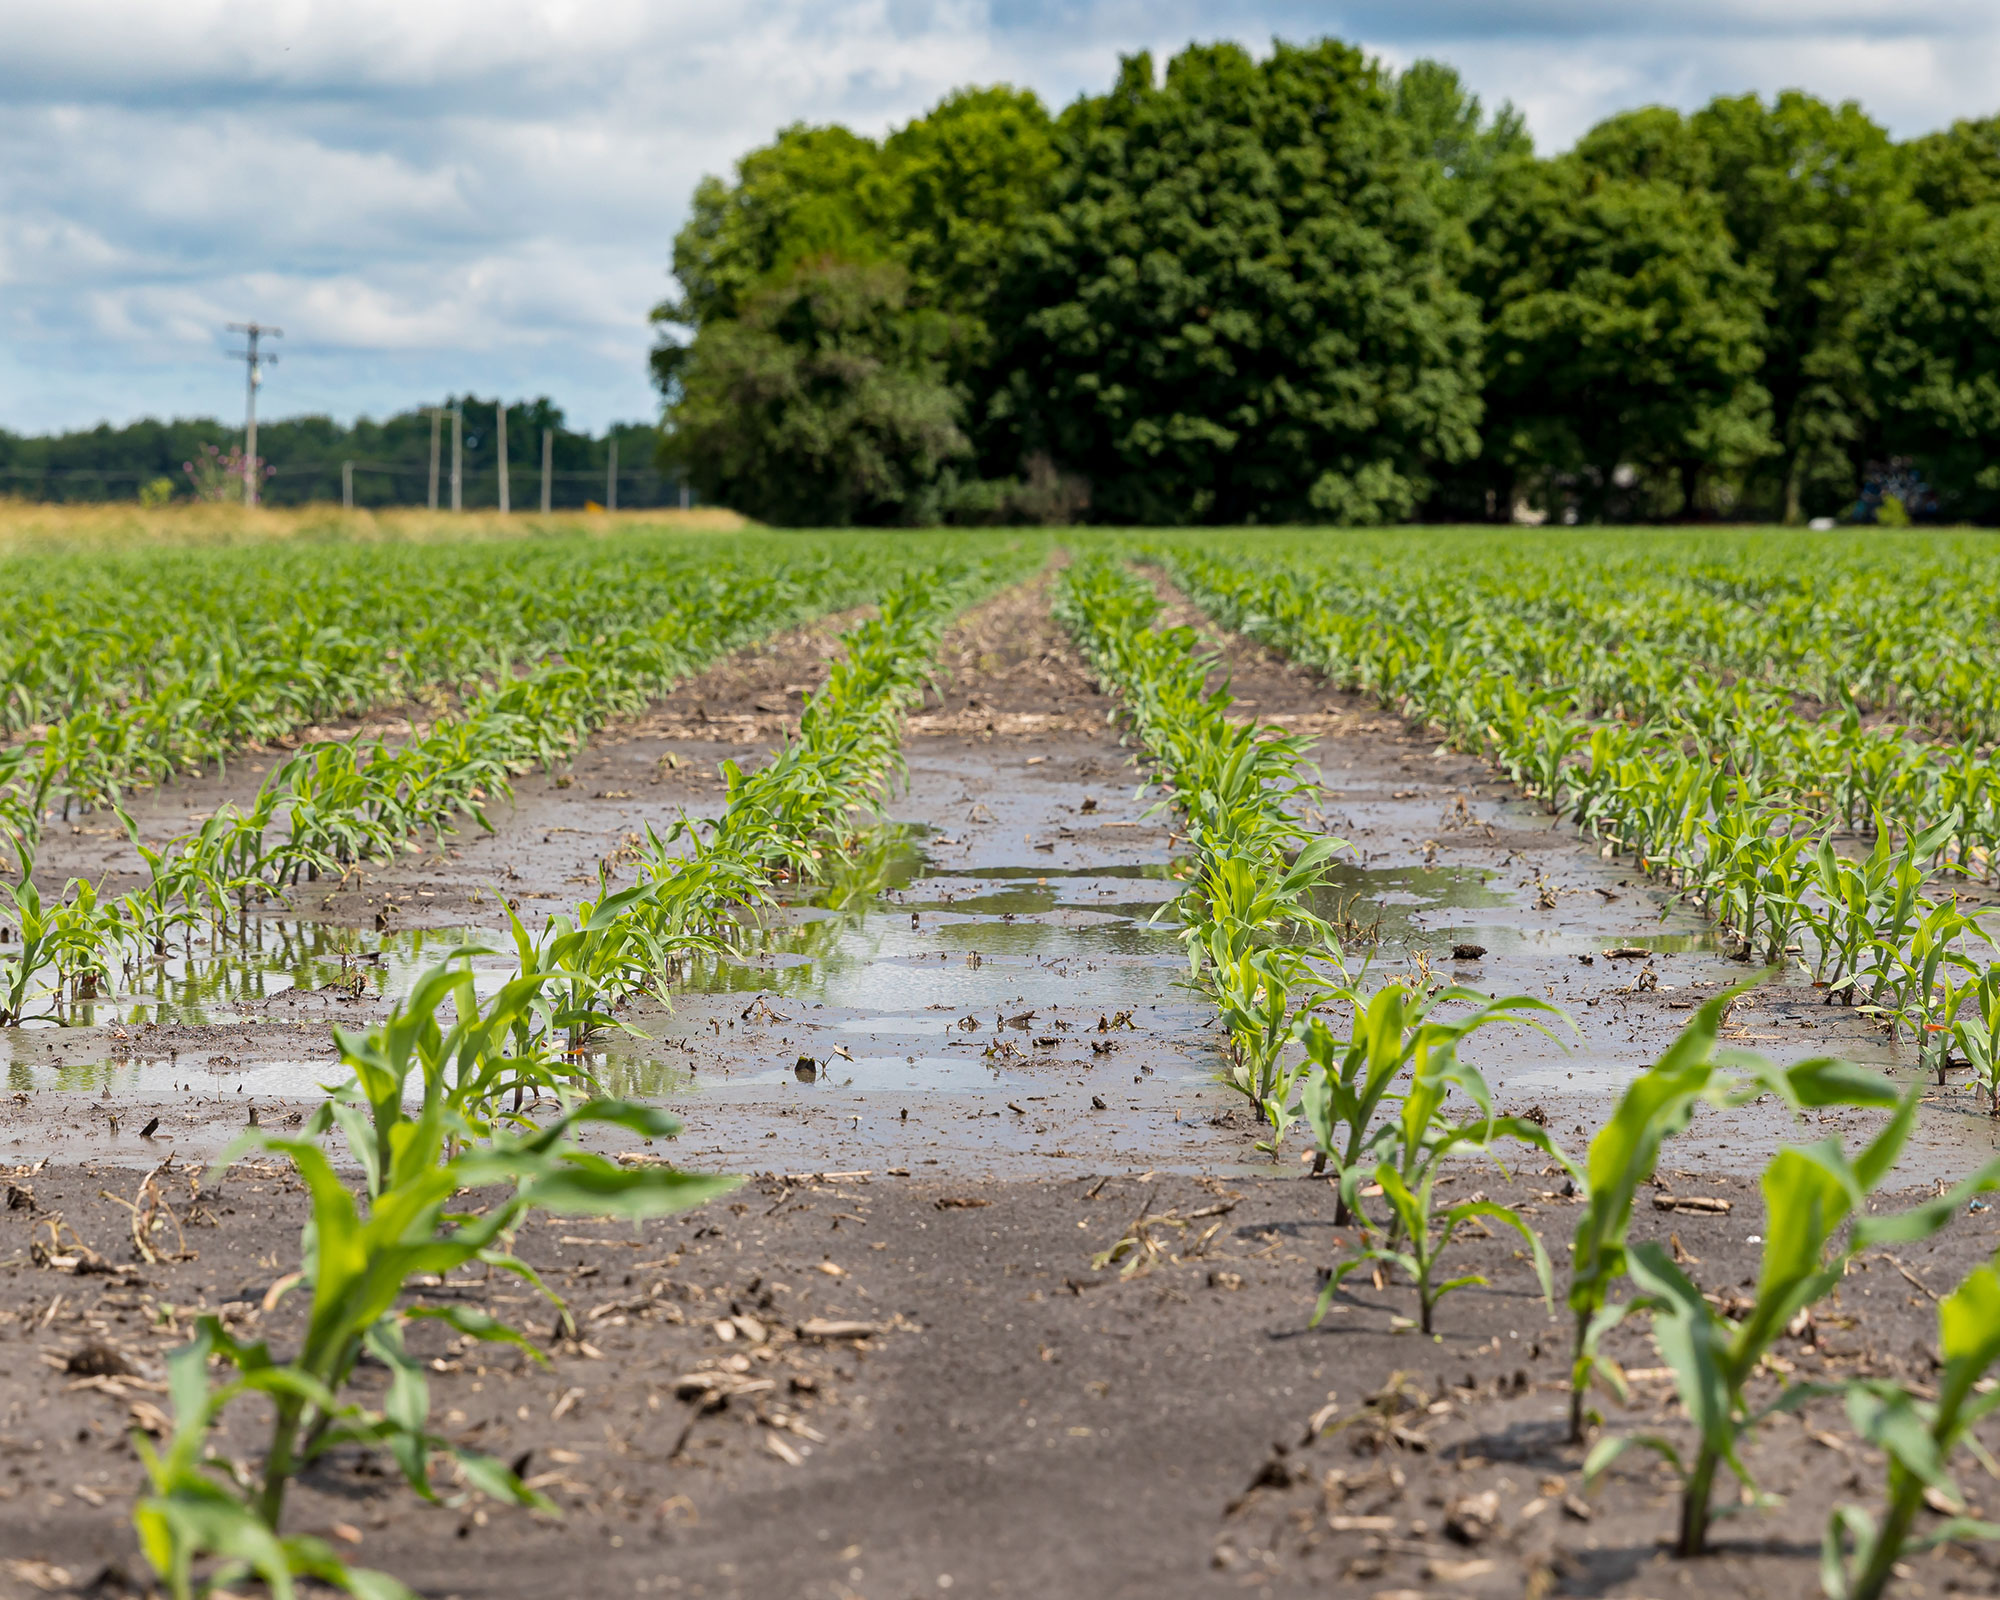 tile drainage system and healthy soil